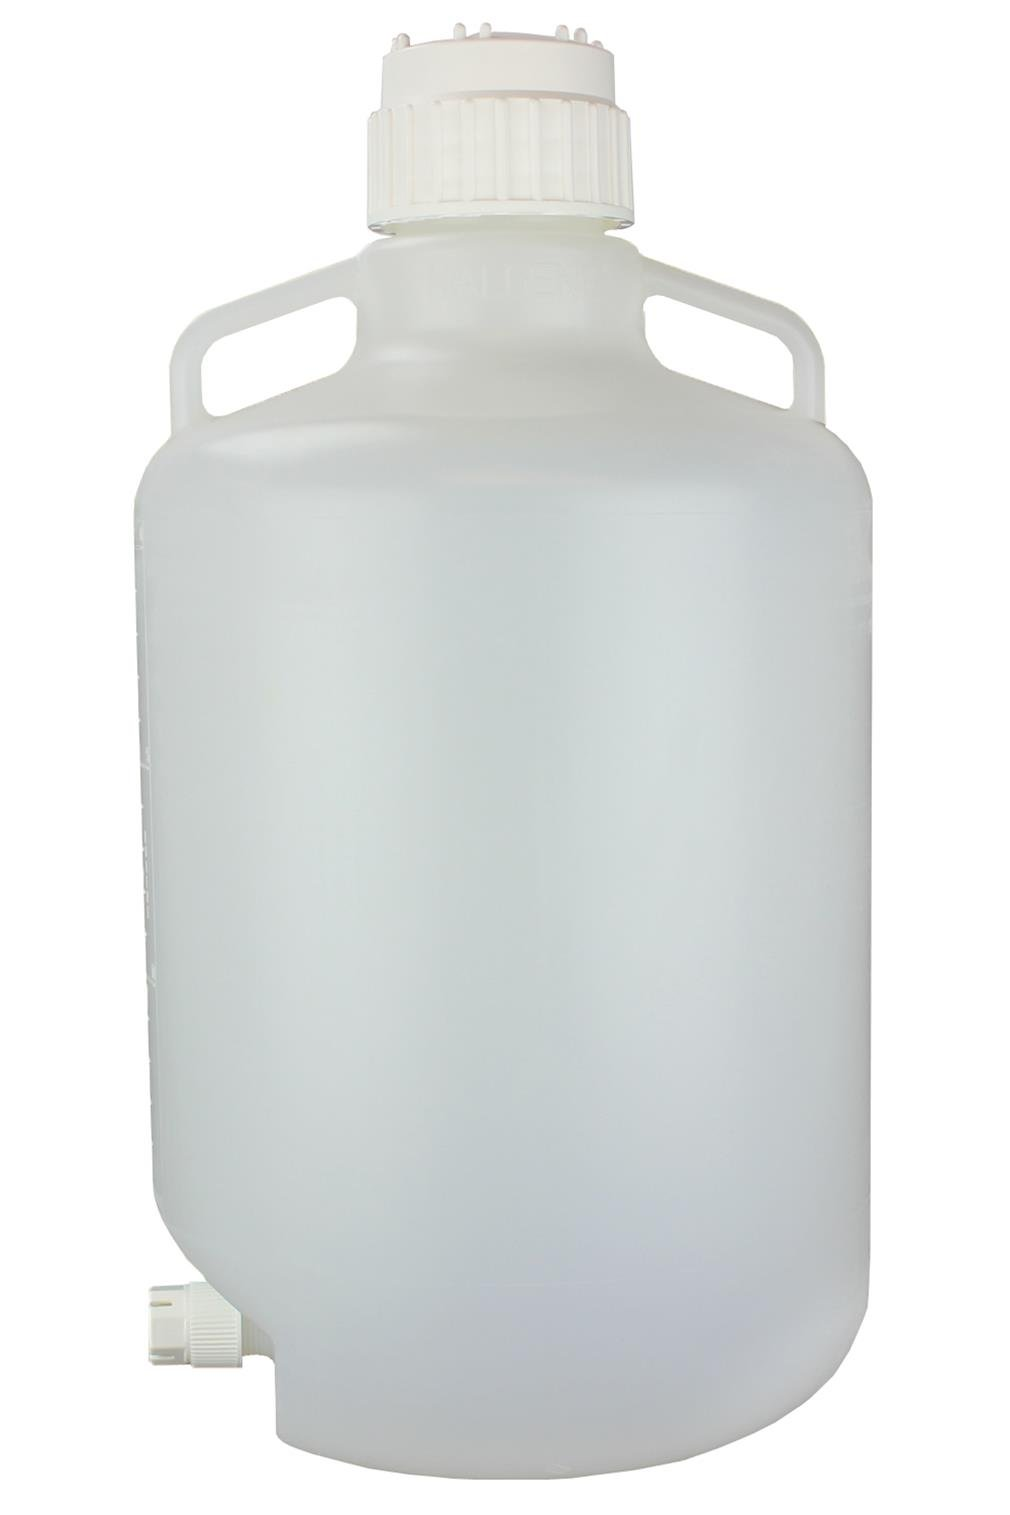 Midland Scientific 2319-0050 PK Nalge Nunc International Corp Polypropylene Autoclavable Carboy with Spigot, 22'' Height, 24'' Width, 24.25'' Length, 20'' (Pack of 4)